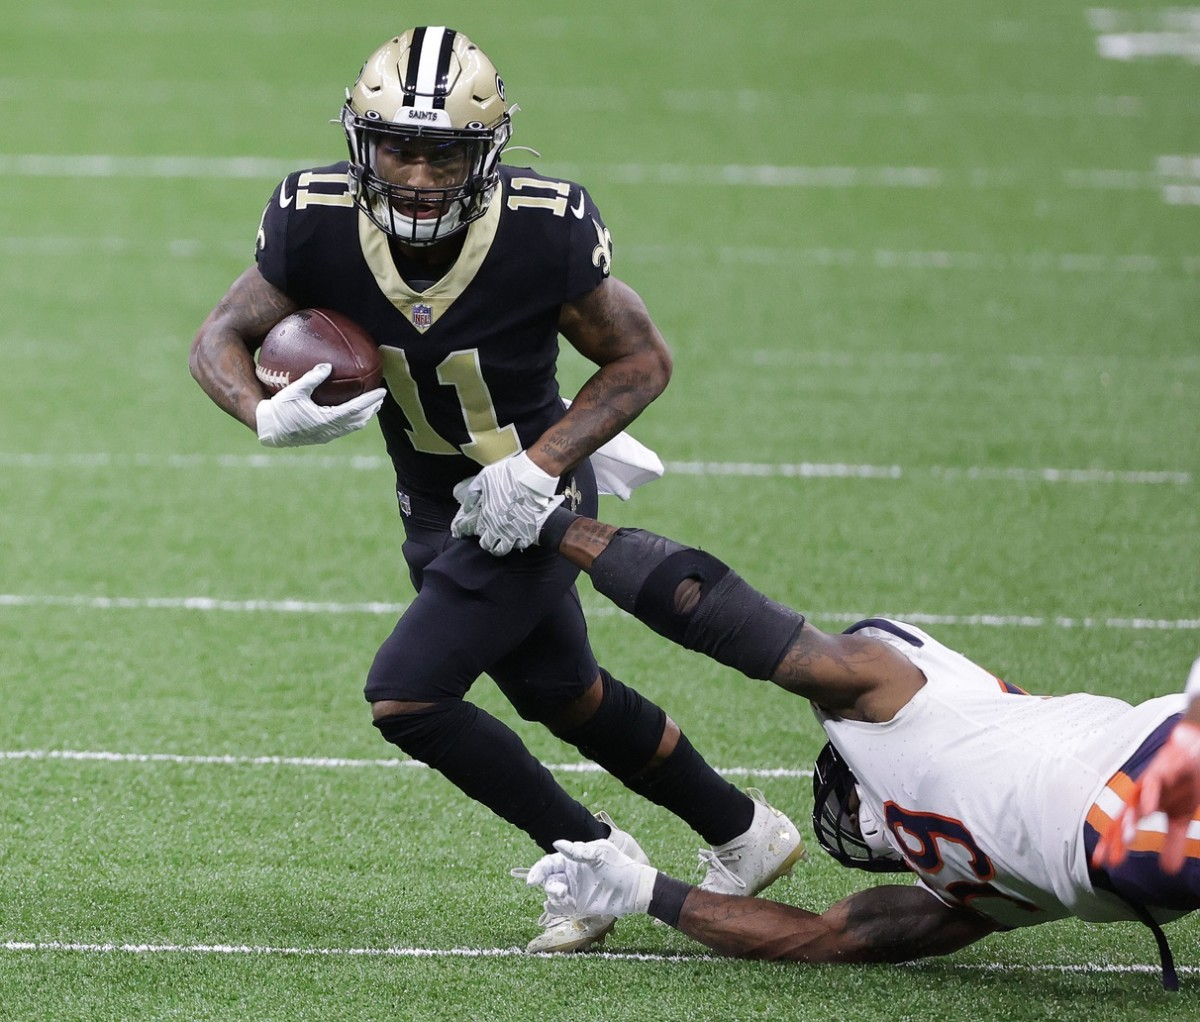 Jan 10, 2021; New Orleans, Louisiana, USA; New Orleans Saints wide receiver Deonte Harris (11) runs the ball against the Chicago Bears in the NFC Wild Card game at Mercedes-Benz Superdome. Mandatory Credit: Derick E. Hingle-USA TODAY Sports